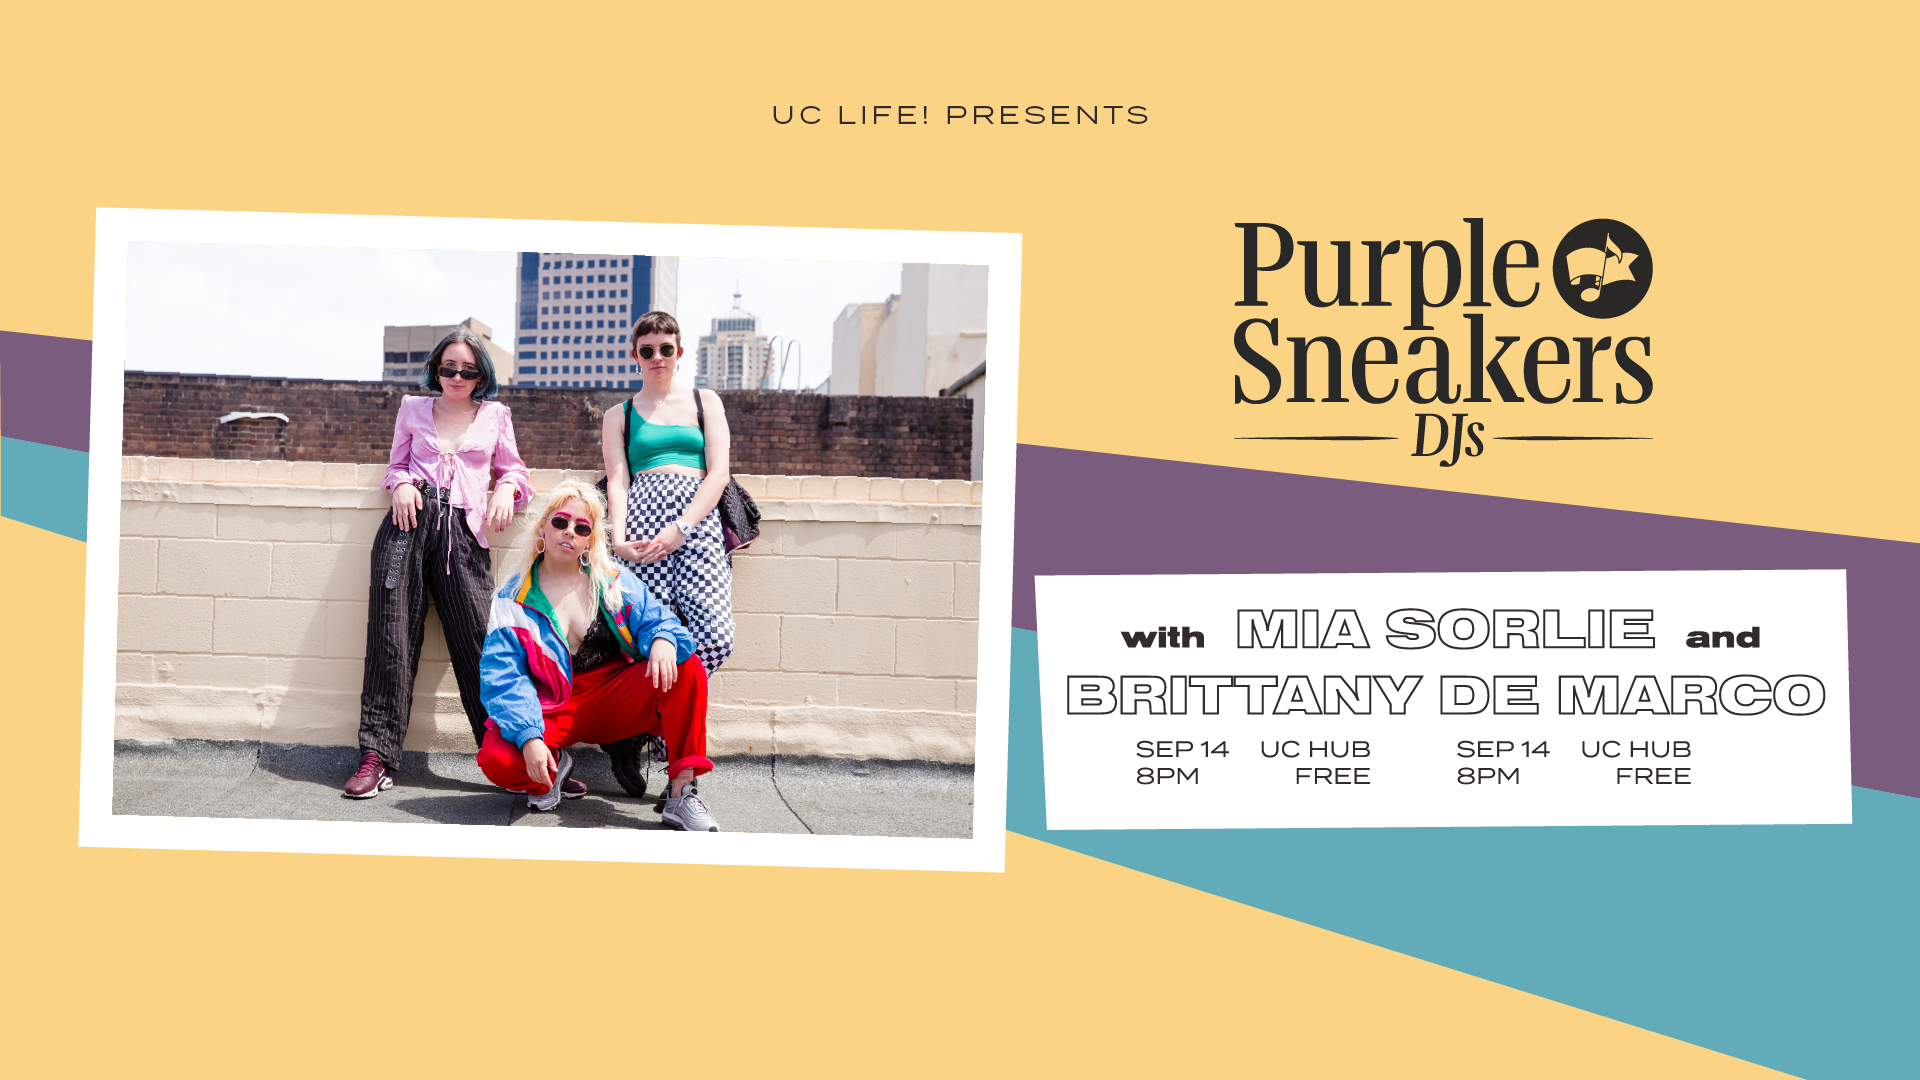 Purple Sneakers DJs on Friday 14 September is also Free Entry